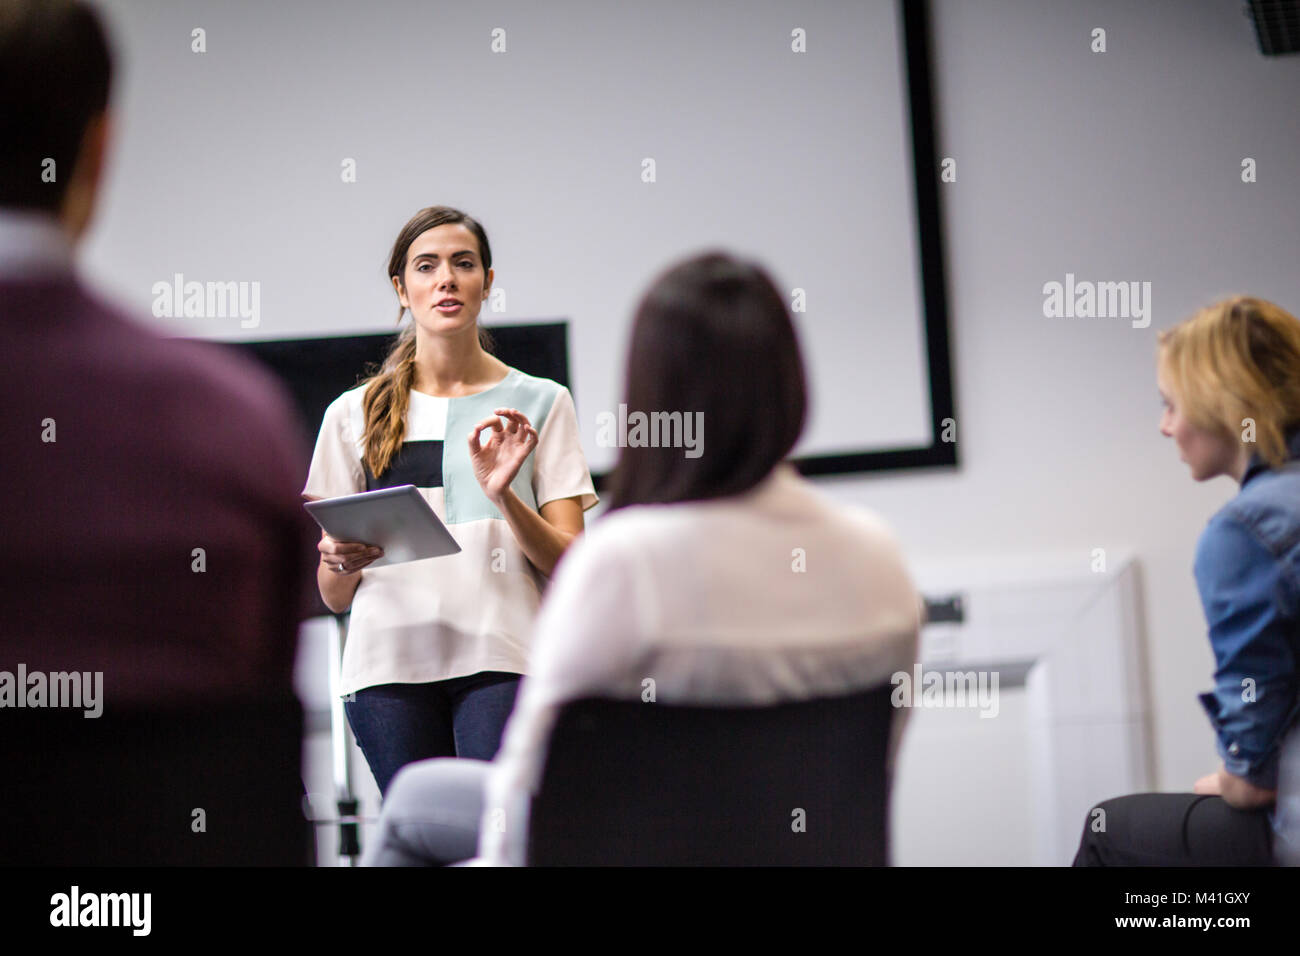 Female executive leading a  training conference - Stock Image